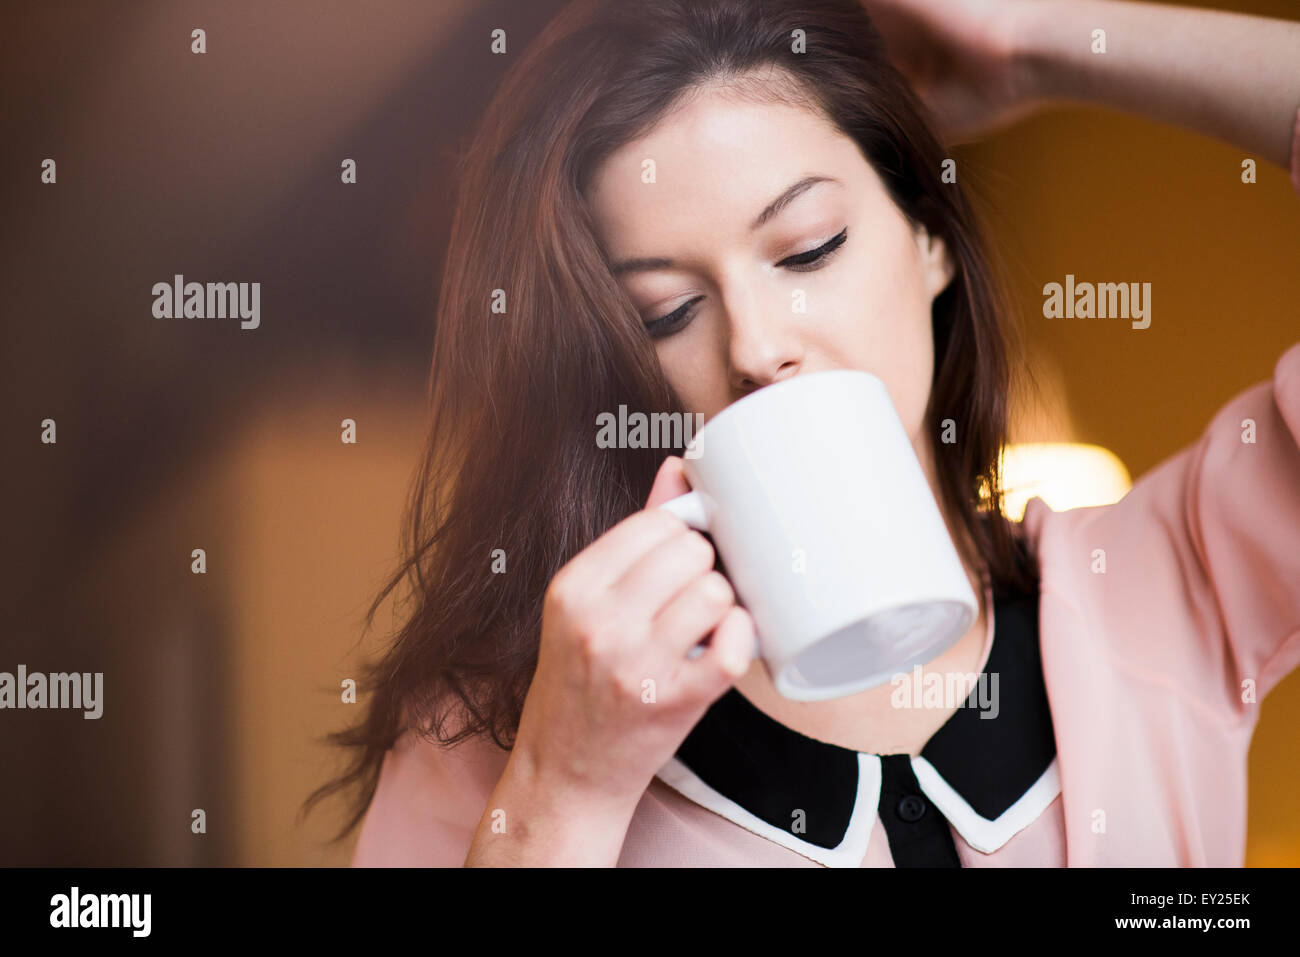 Young woman drinking coffee - Stock Image